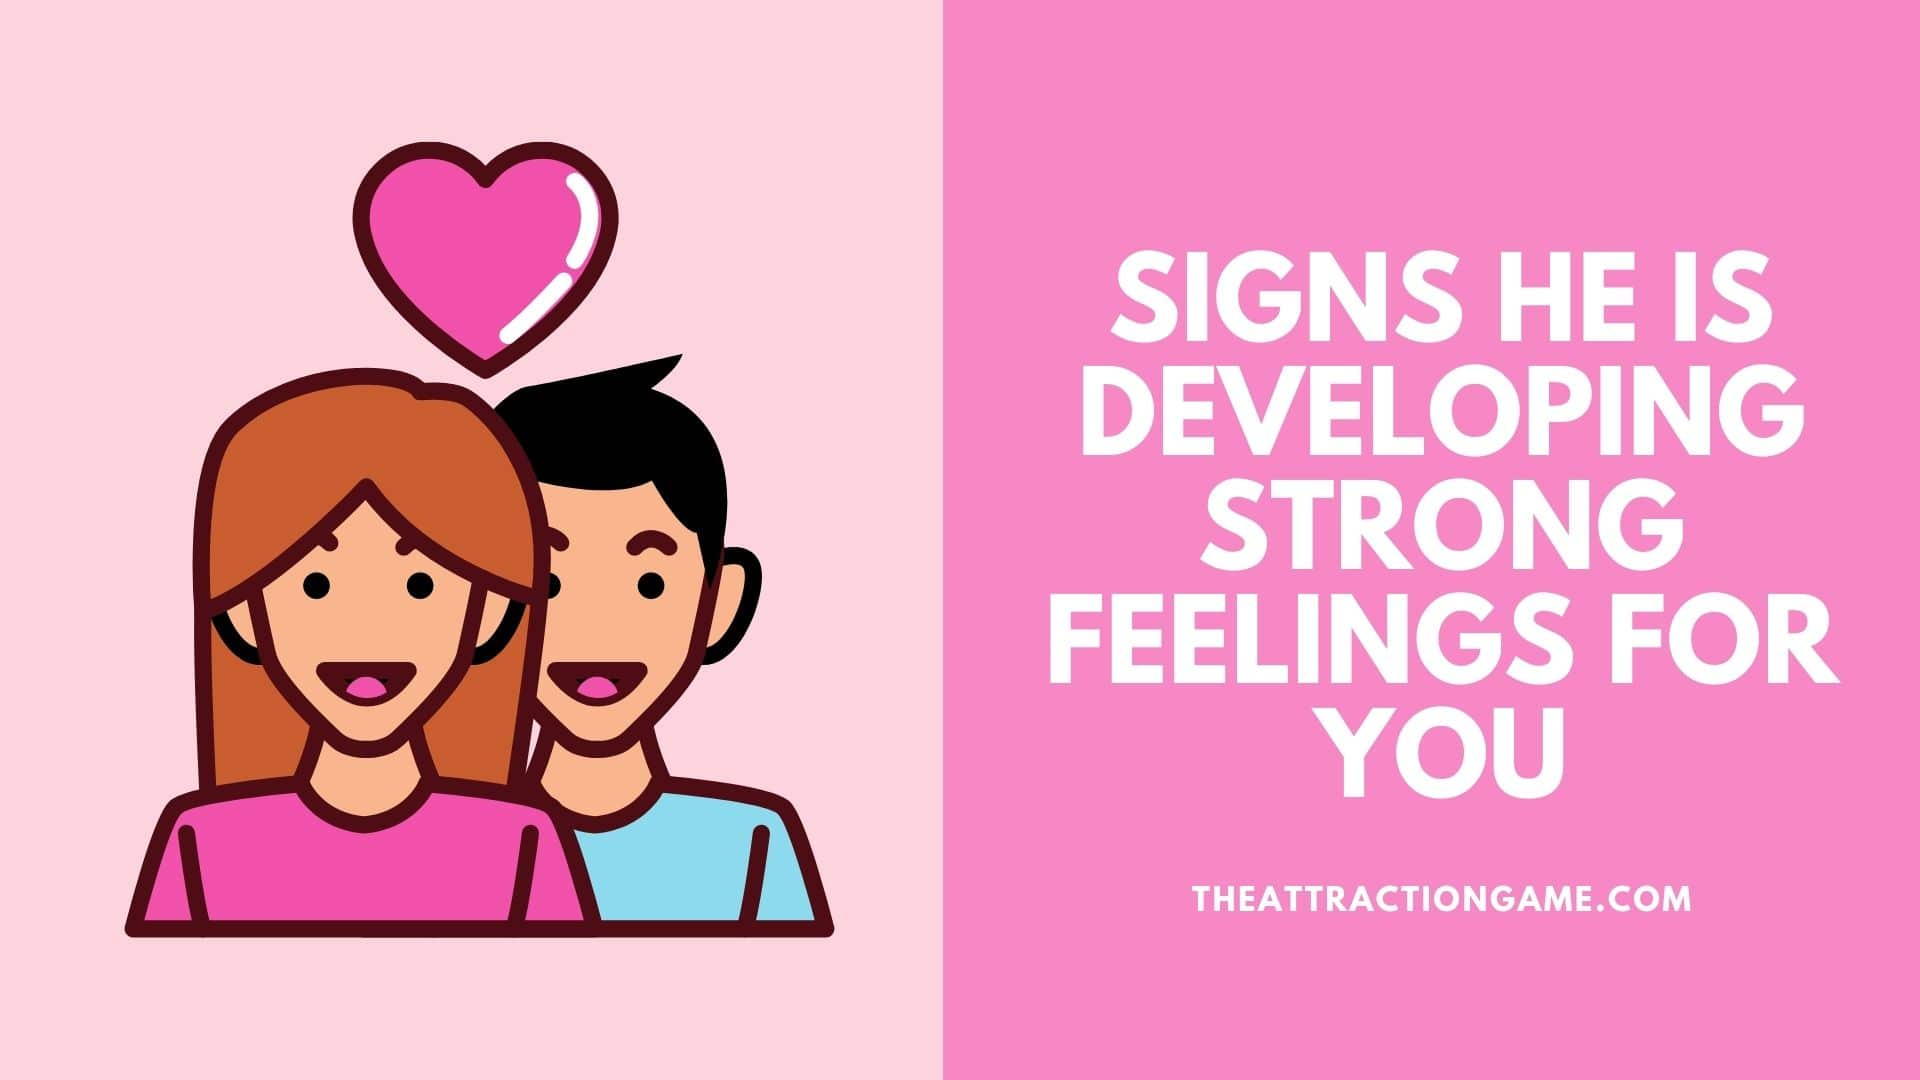 signs he has feelings for you, signs he feels strongly about you, signs he developed feelings for you, signs he is developing strong feeling for you